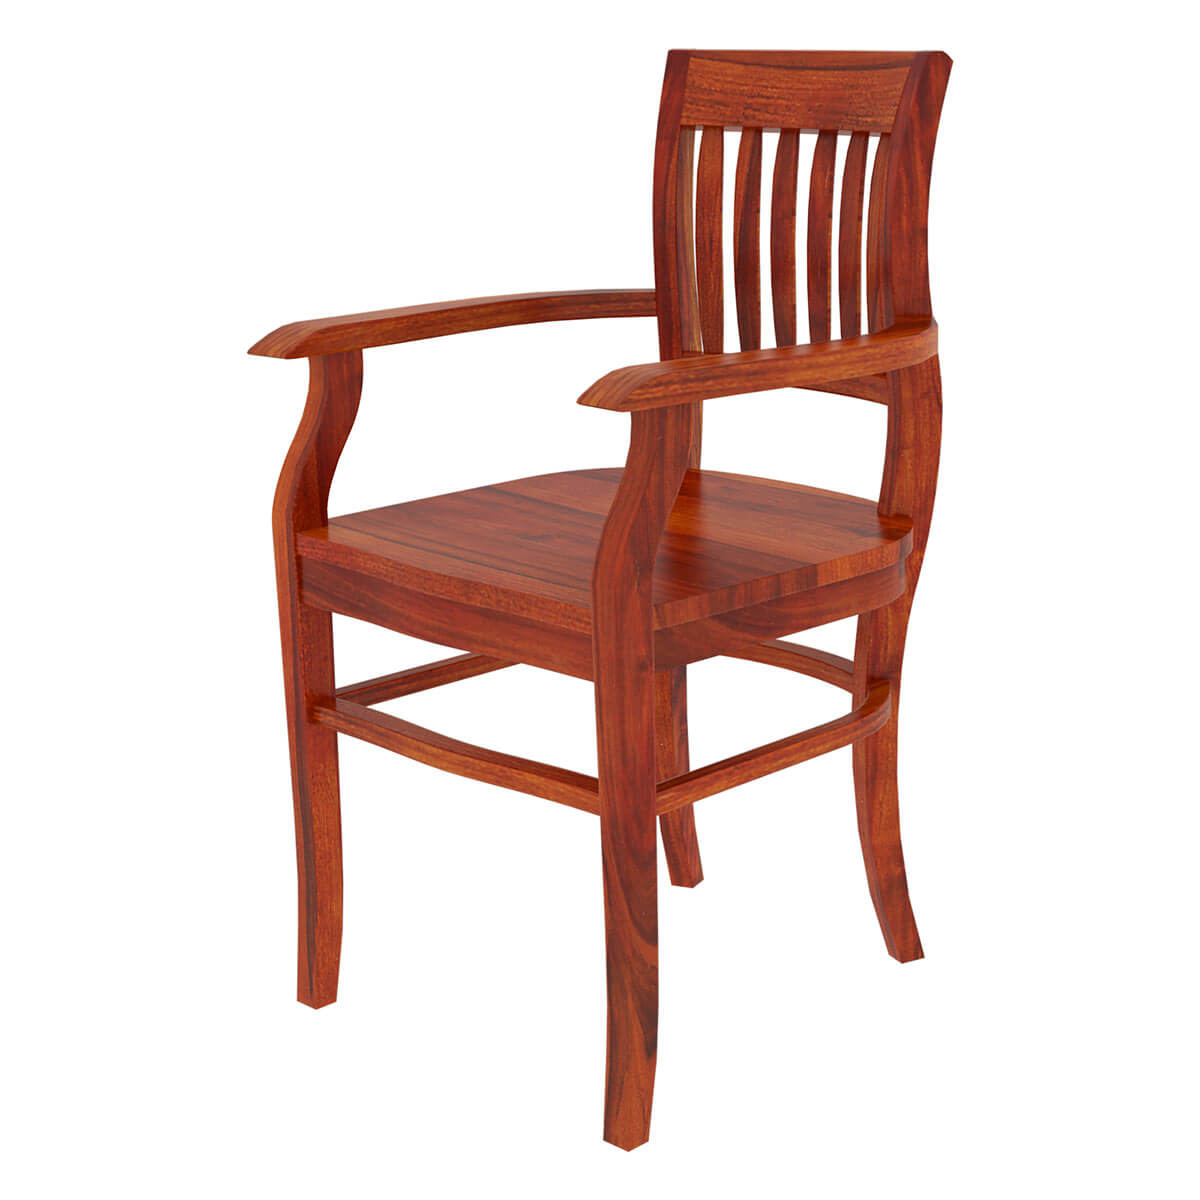 Rustic Dining Chairs Siena Rustic Solid Wood Arm Dining Chair